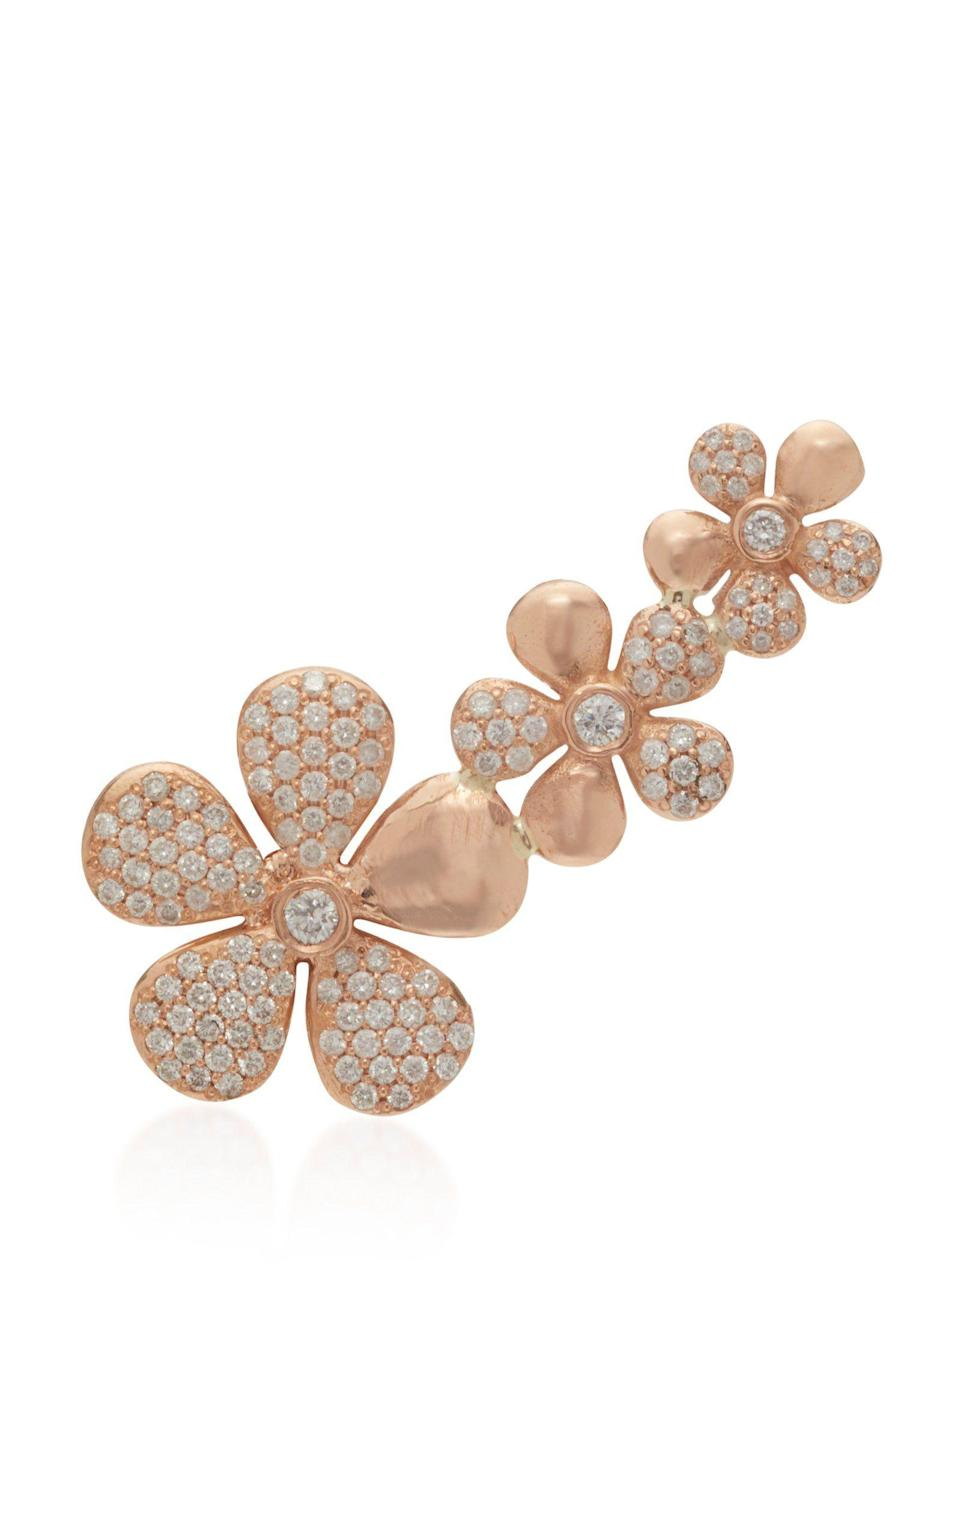 """<p><strong>Colette Jewelry</strong></p><p>modaoperandi.com</p><p><strong>$3250.00</strong></p><p><a href=""""https://go.redirectingat.com?id=74968X1596630&url=https%3A%2F%2Fwww.modaoperandi.com%2Fwomen%2Fp%2Fcolette-jewelry-llc%2Ffloral-18k-rose-gold-and-diamond-ear-climber%2F292948&sref=https%3A%2F%2Fwww.harpersbazaar.com%2Fwedding%2Fplanning%2Fg33647953%2Ffourth-anniversary-gift-ideas%2F"""" rel=""""nofollow noopener"""" target=""""_blank"""" data-ylk=""""slk:SHOP NOW"""" class=""""link rapid-noclick-resp"""">SHOP NOW</a></p><p>Nothing says happy anniversary like jewelry. This pavé diamond ear climber is modern, feminine, and also in theme.</p>"""